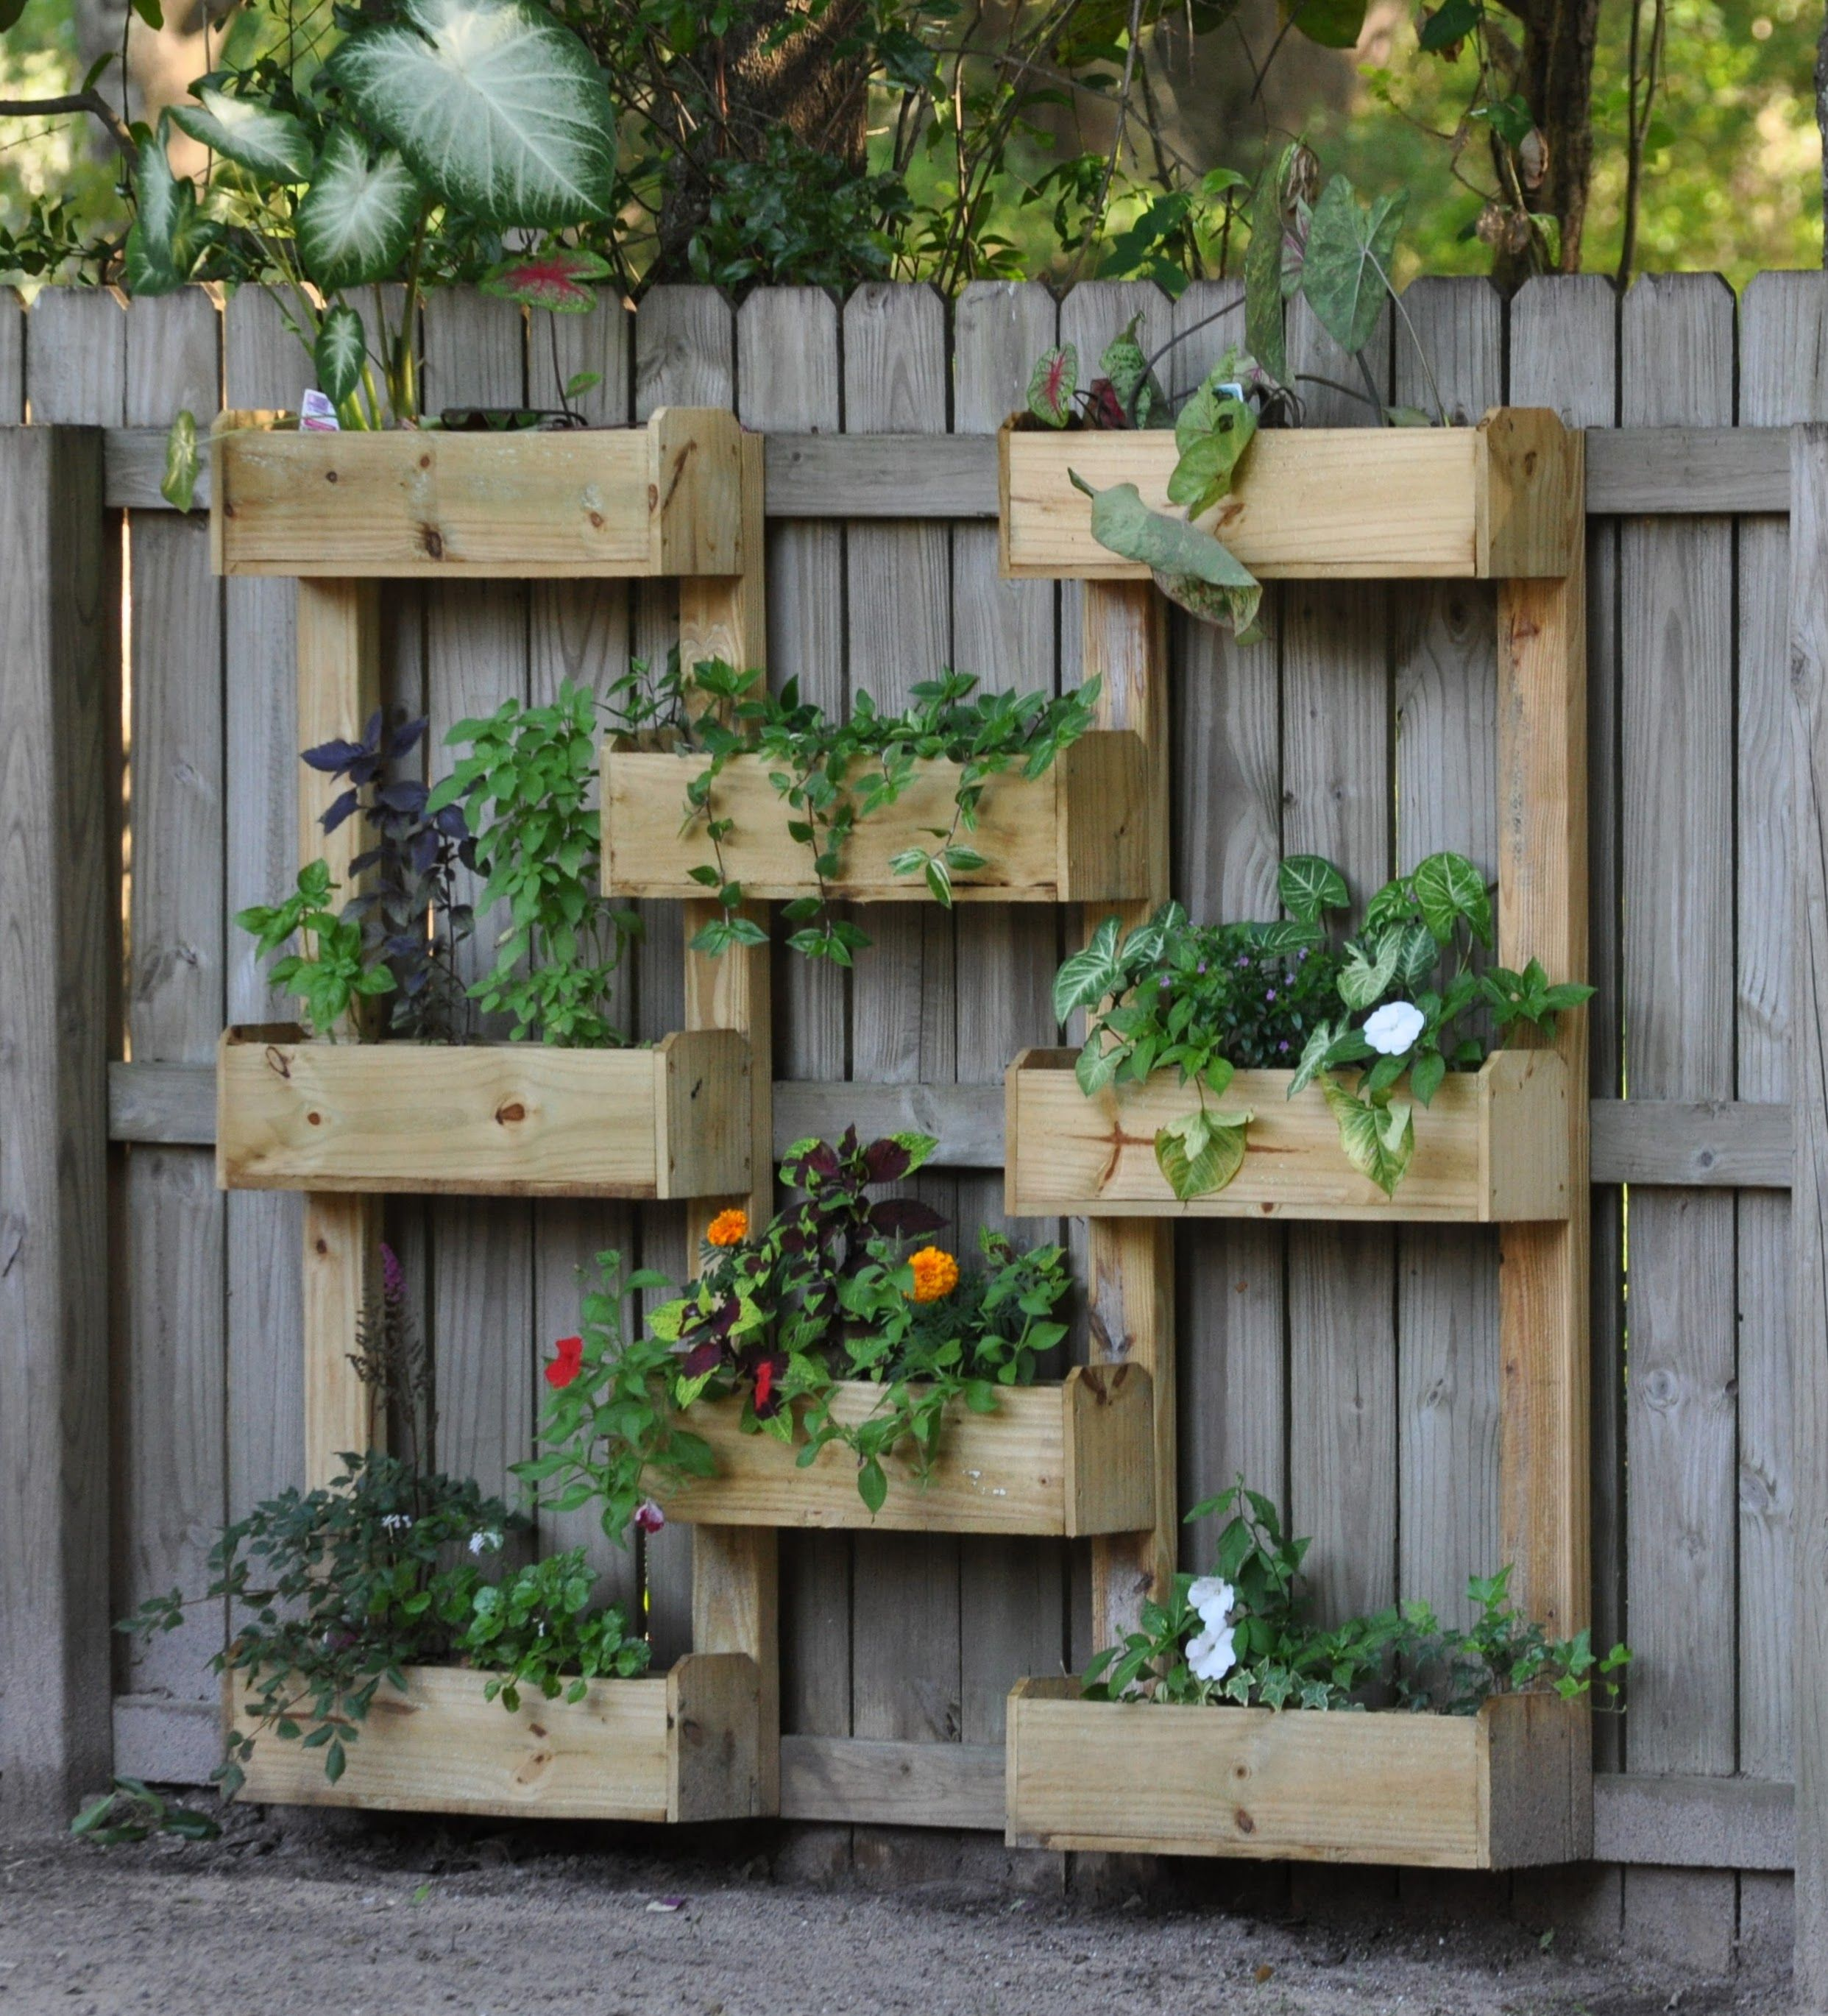 Planter Boxes Built With Fence Pickets Garden Planter Boxes Planter Boxes Fence Planters